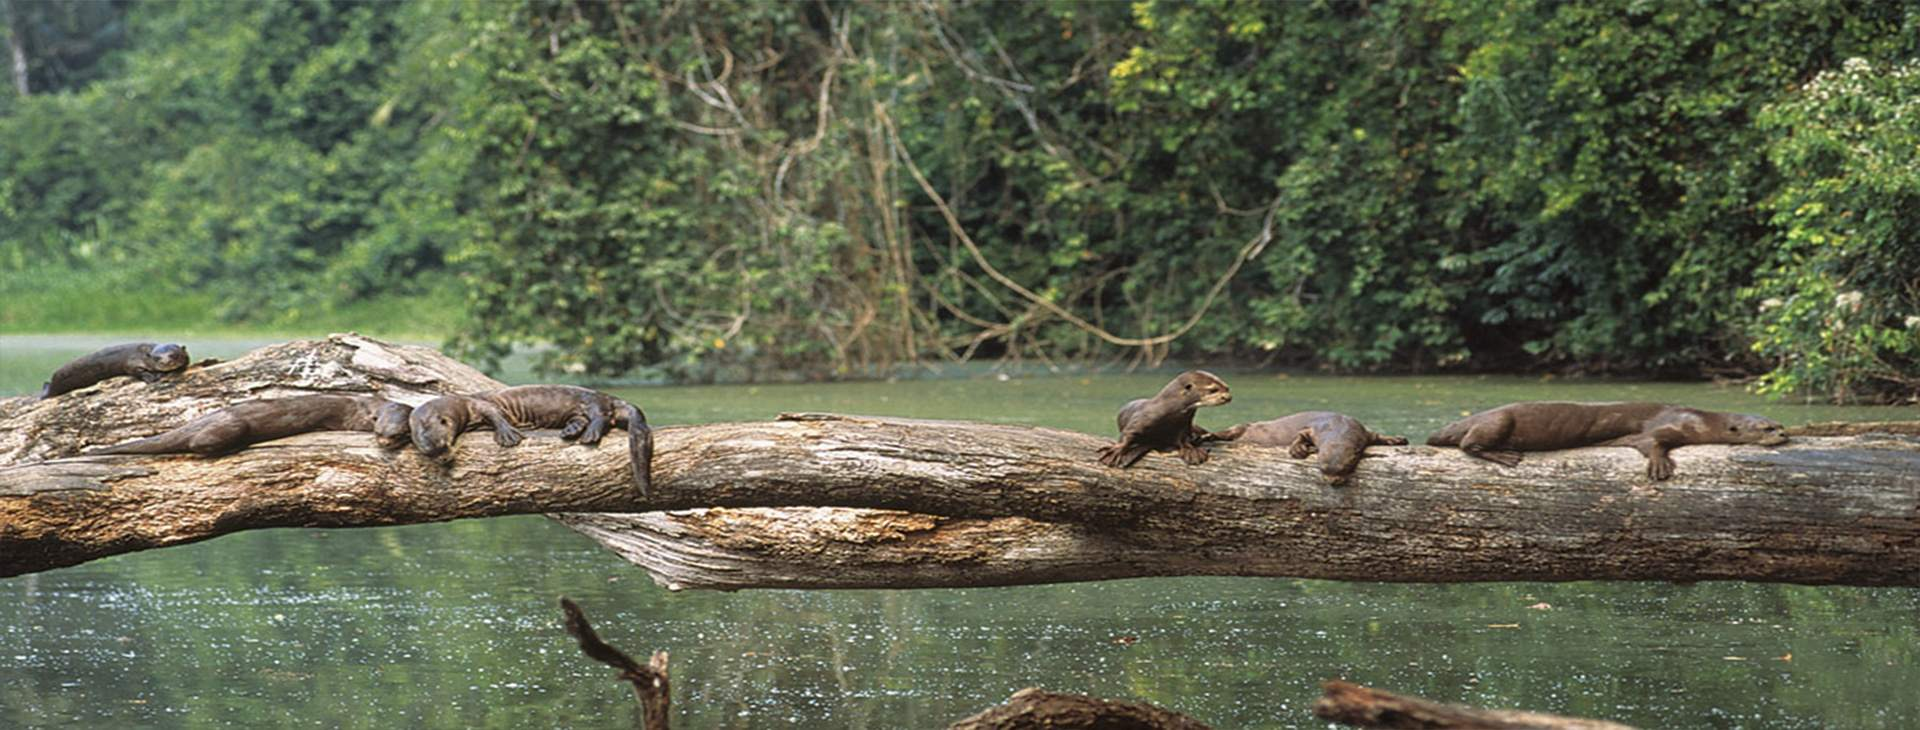 Amazon Adventure 3dias - Amazon Wildlife Peru Travel